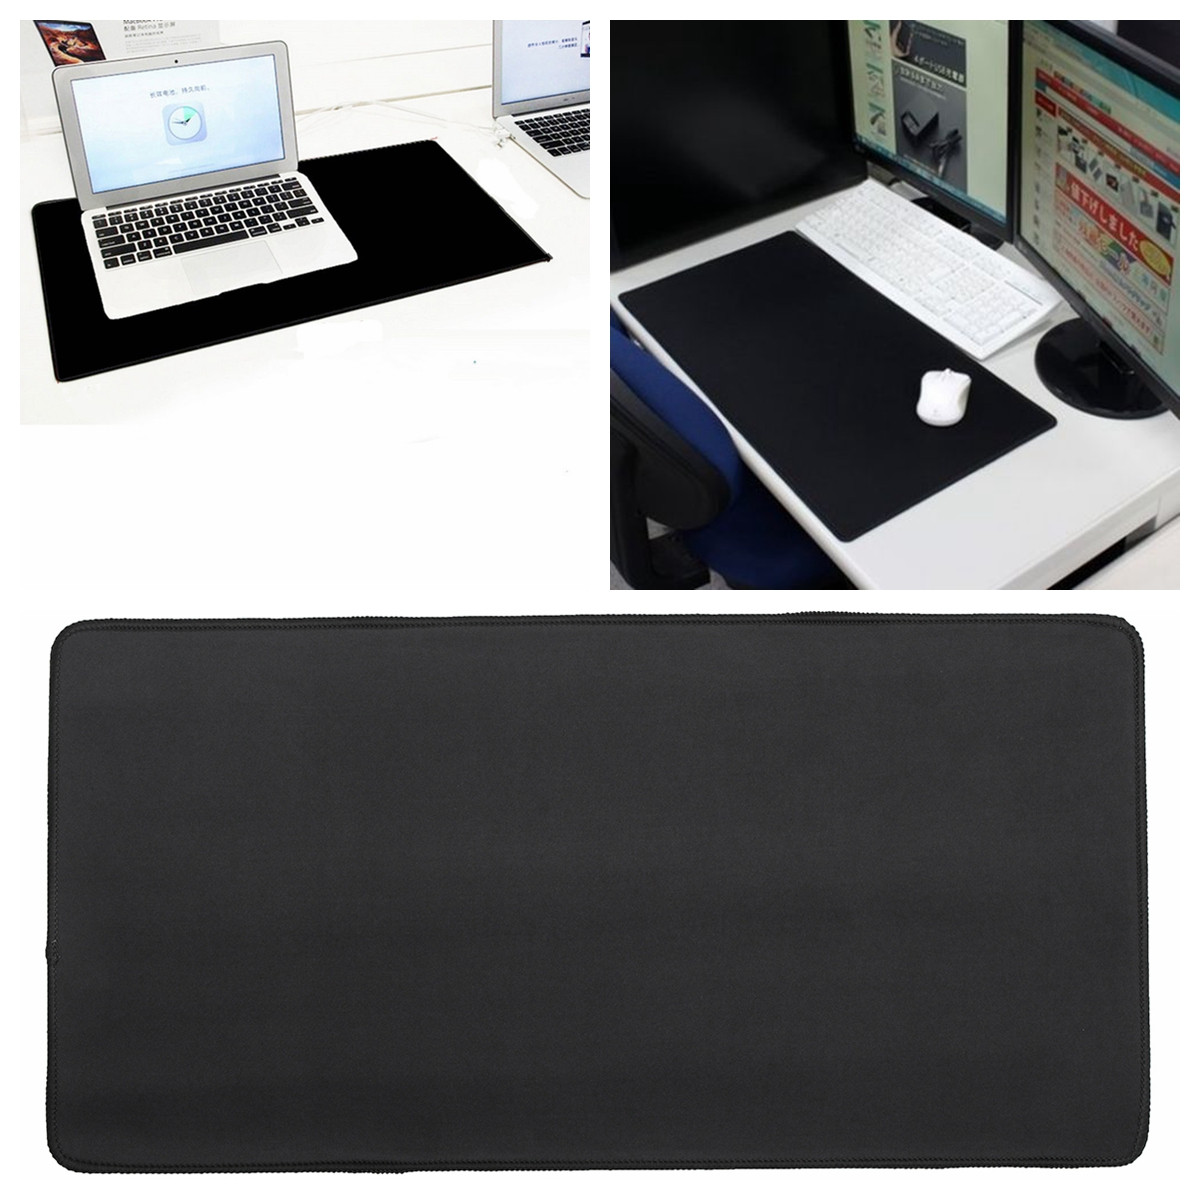 300x600x2mm Anti-Slip Large Rubber Mouse Pad Mat For Desktop Laptop PC